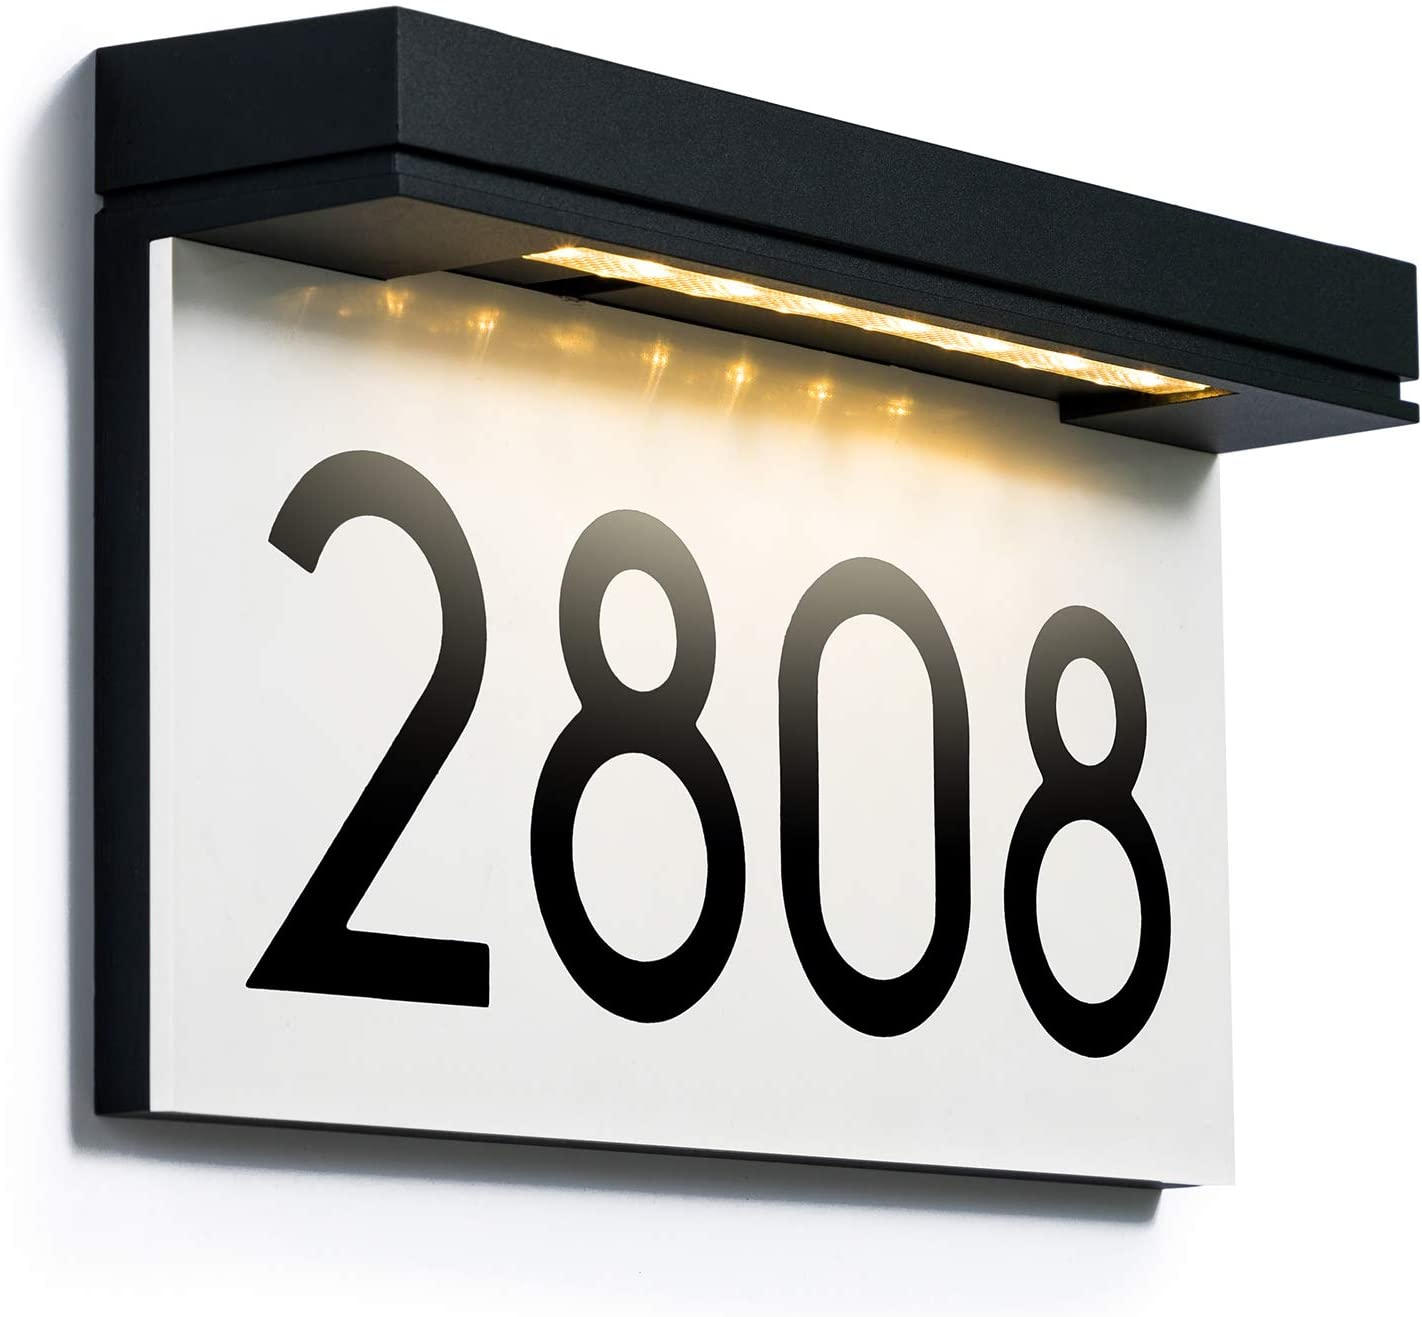 Address Plaques for House Solar Powered, House Number for Outside, LED Address Sign Outdoor Waterproof 3000K Warm White